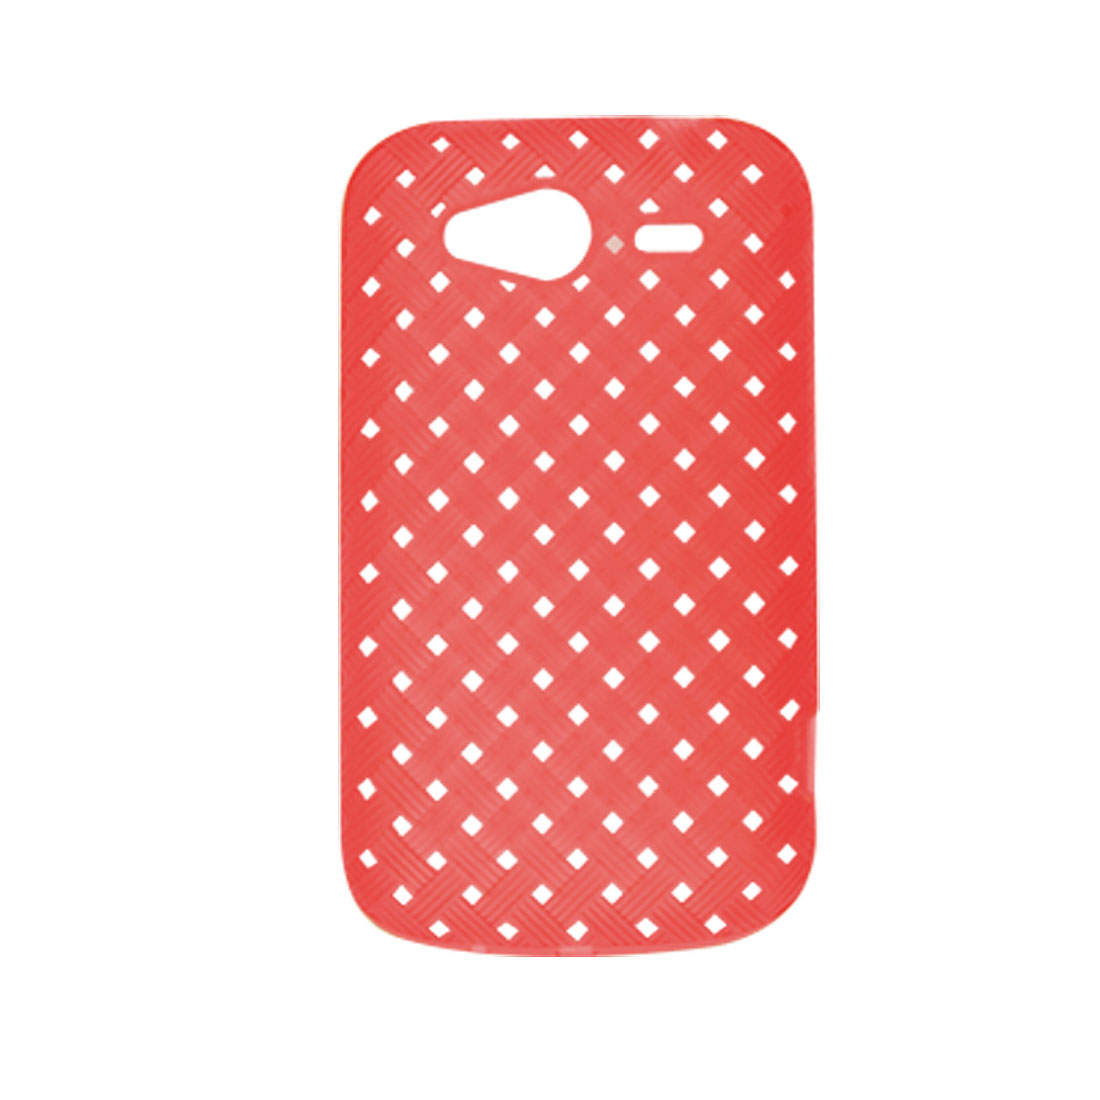 Red Woven Pattern Mini Holes Soft Plastic Case for HTC Wildfire S G13 G8s